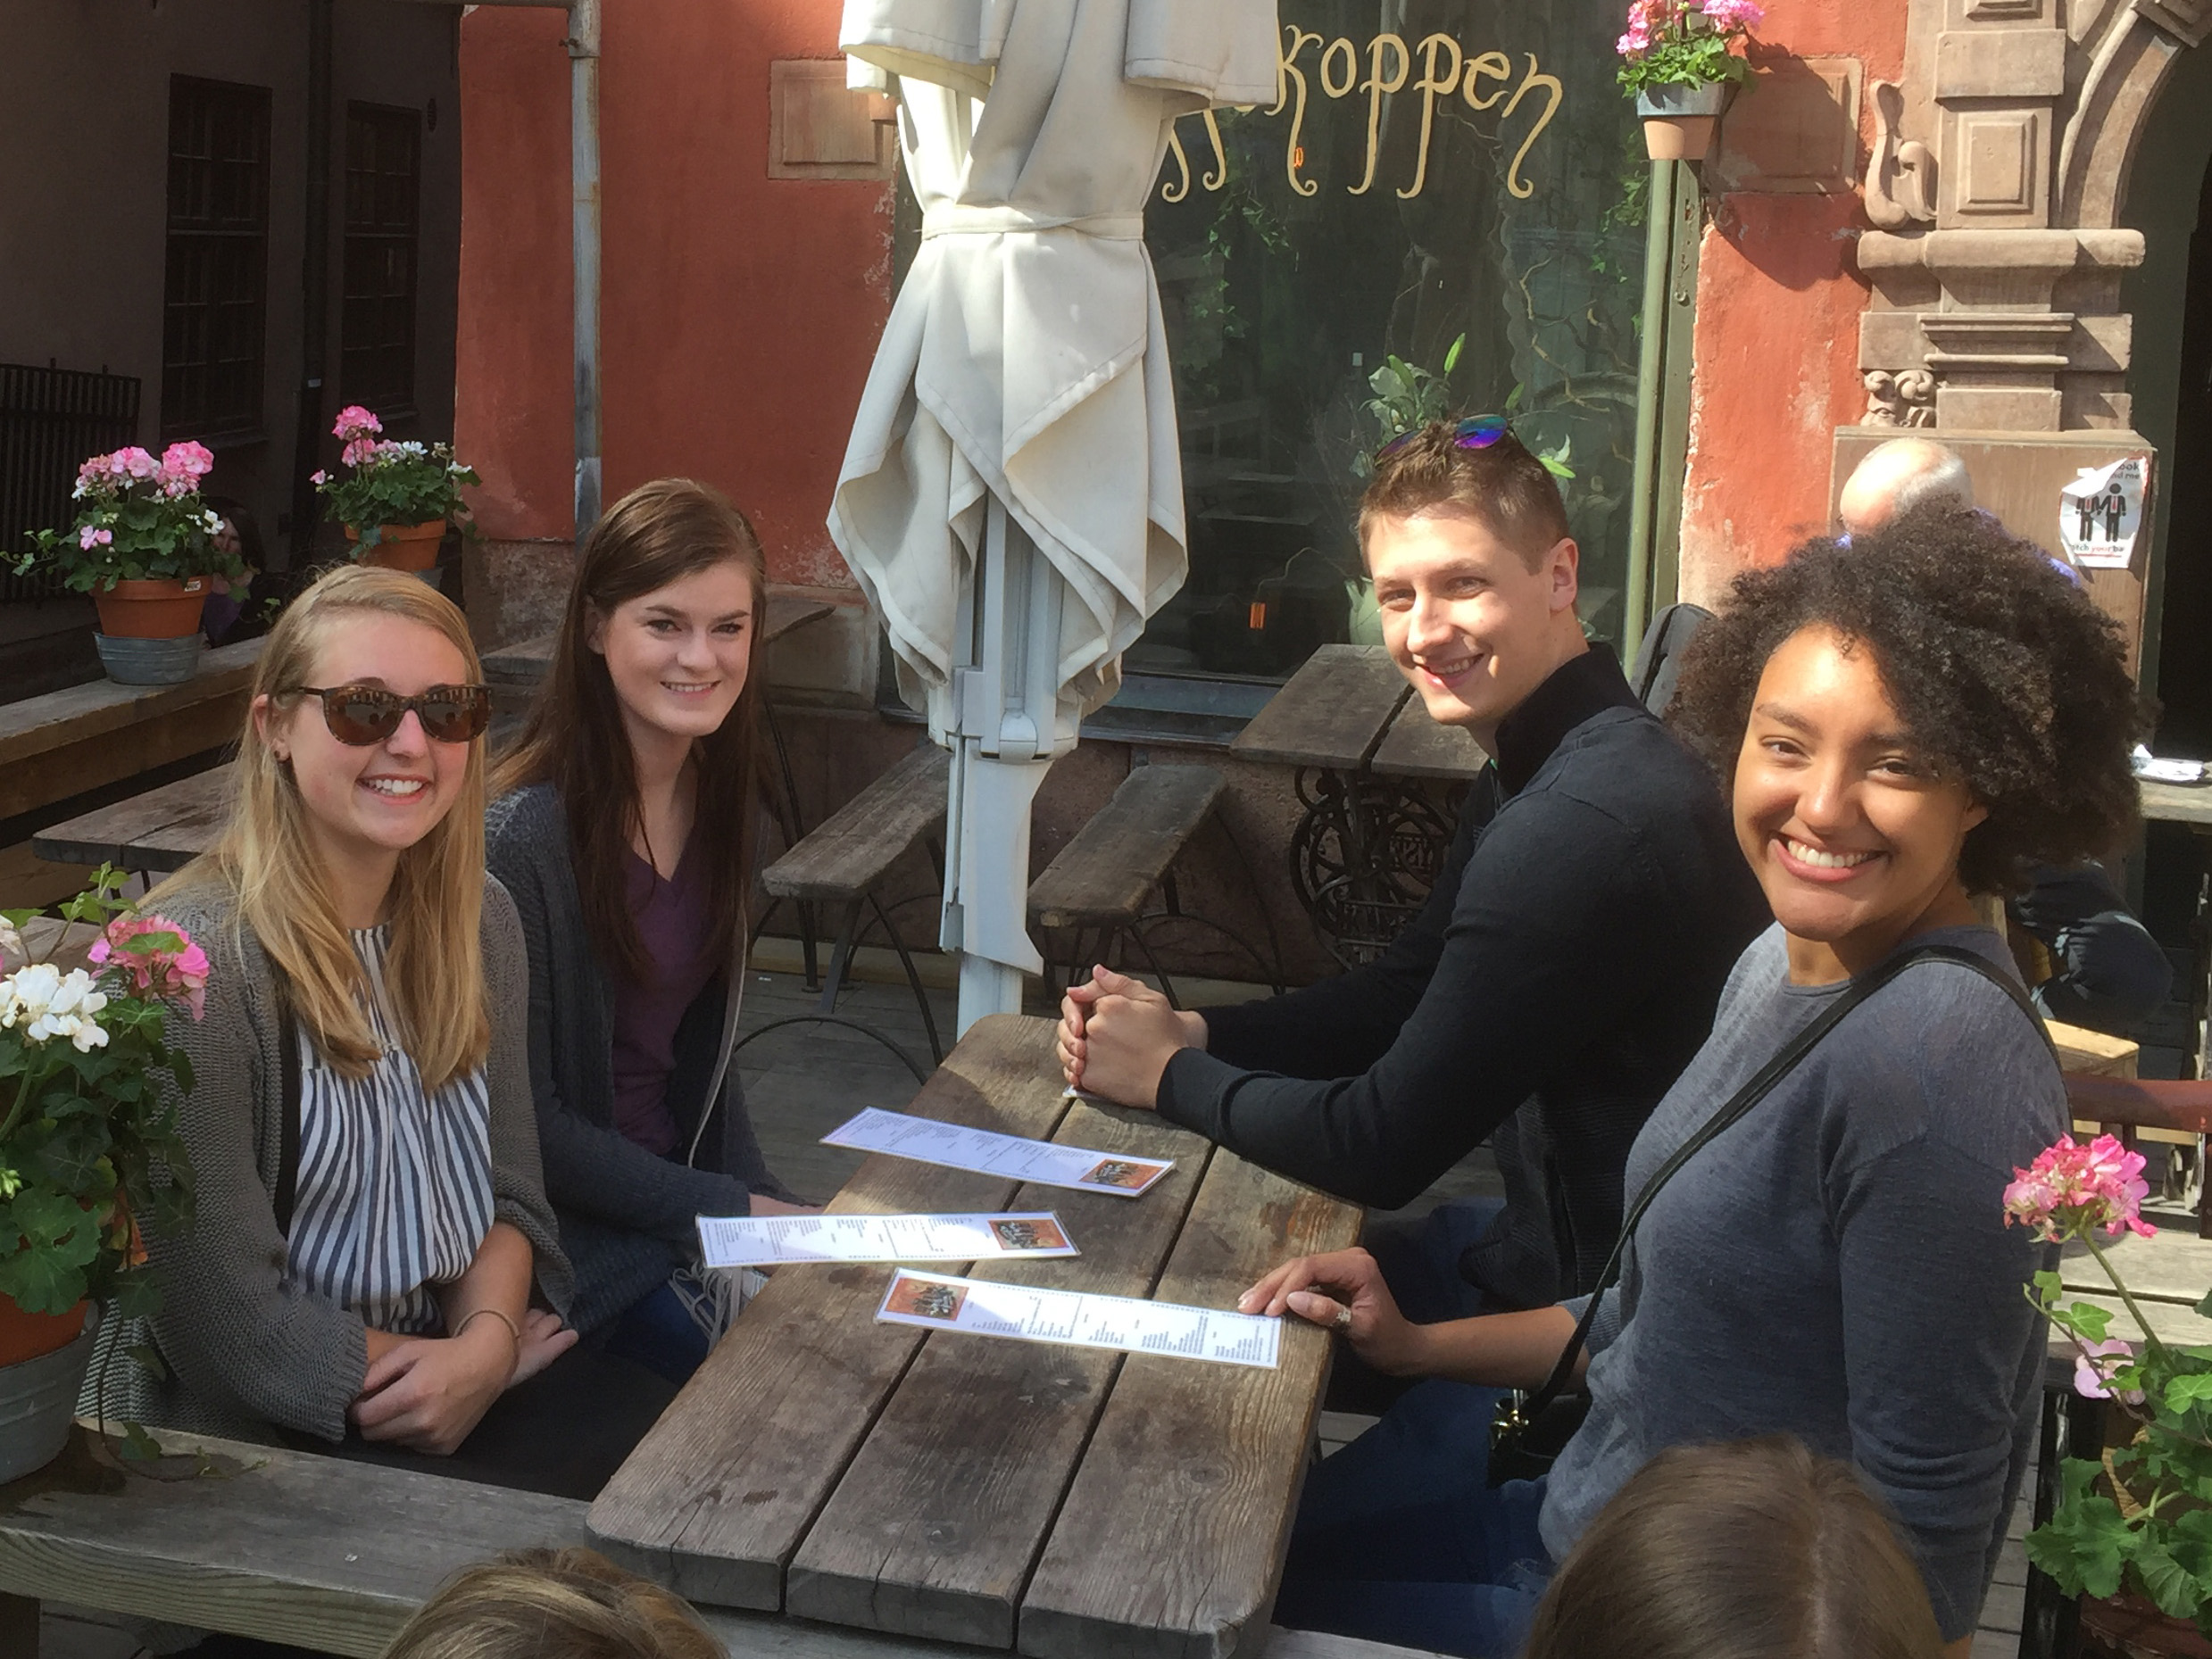 From left, Alyssa Hill, Anne Marie Greenwood, Taylor Mankle and Natasha Hill visit a restaurant in Stockholm.